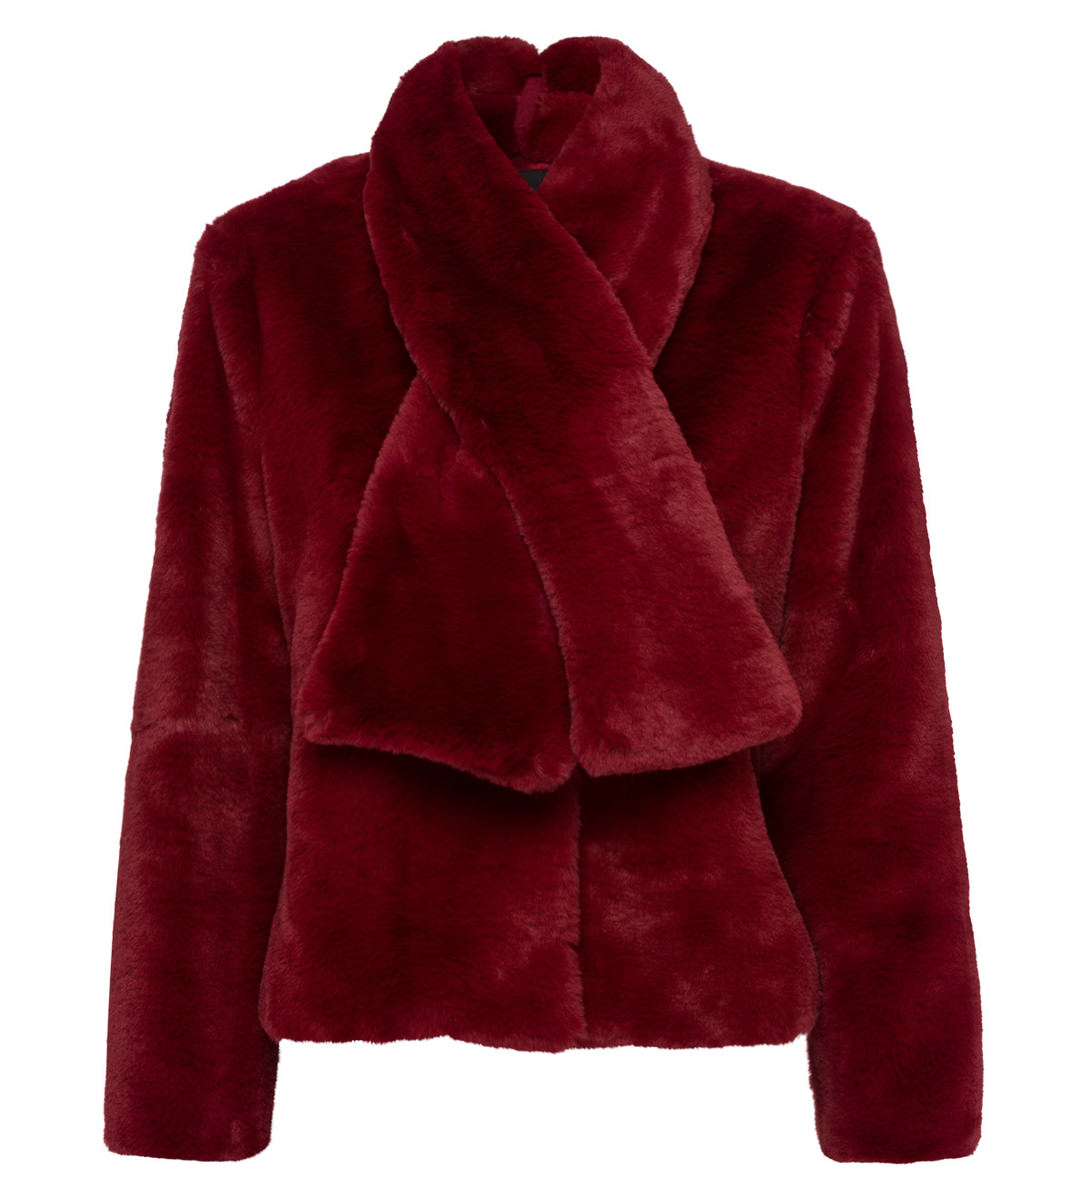 Jacke aus Fellimitat in wine red